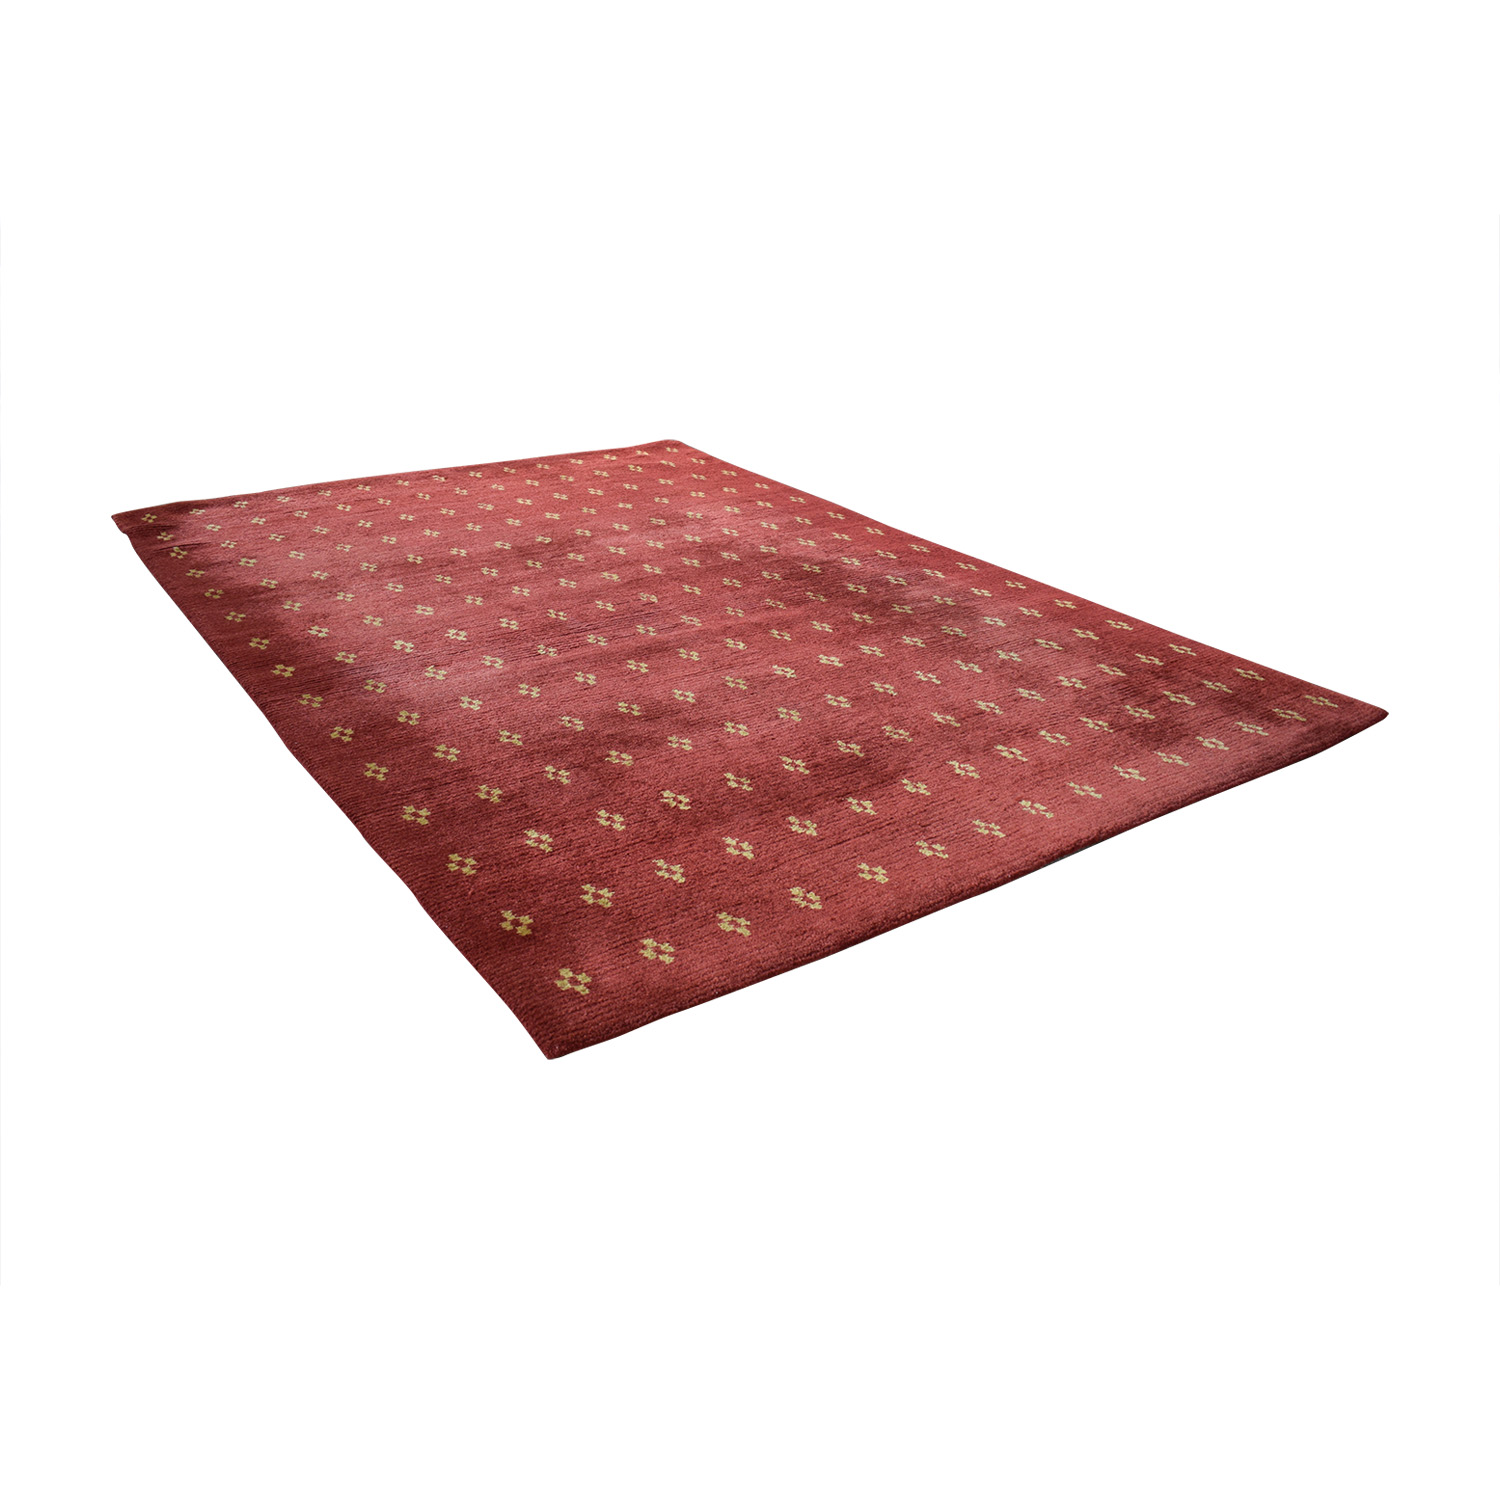 buy Odegard 9x12 Rug Odegard Decor